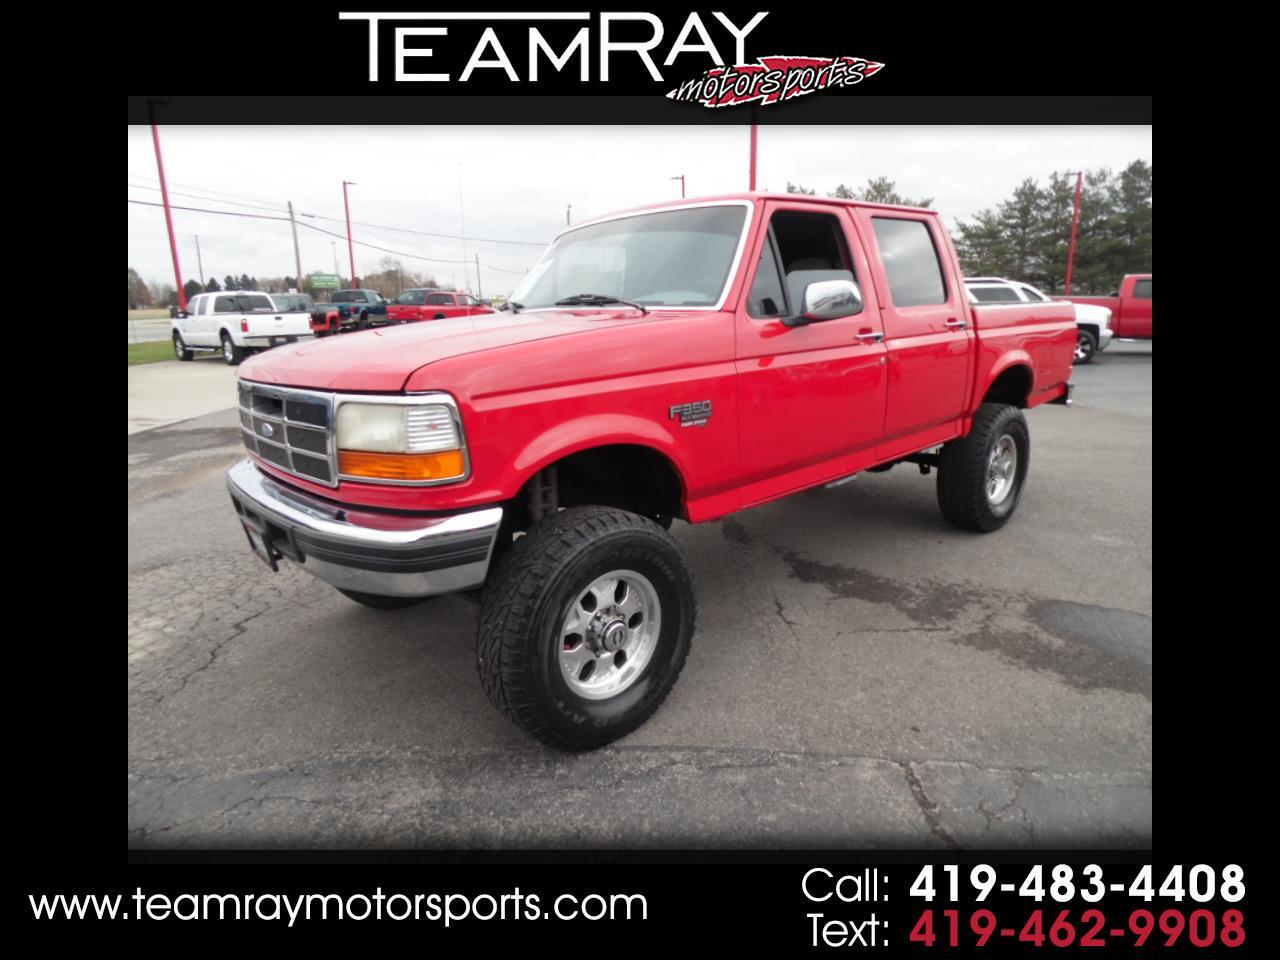 1996 Ford F-350 Crew Cab 4dr 168.4